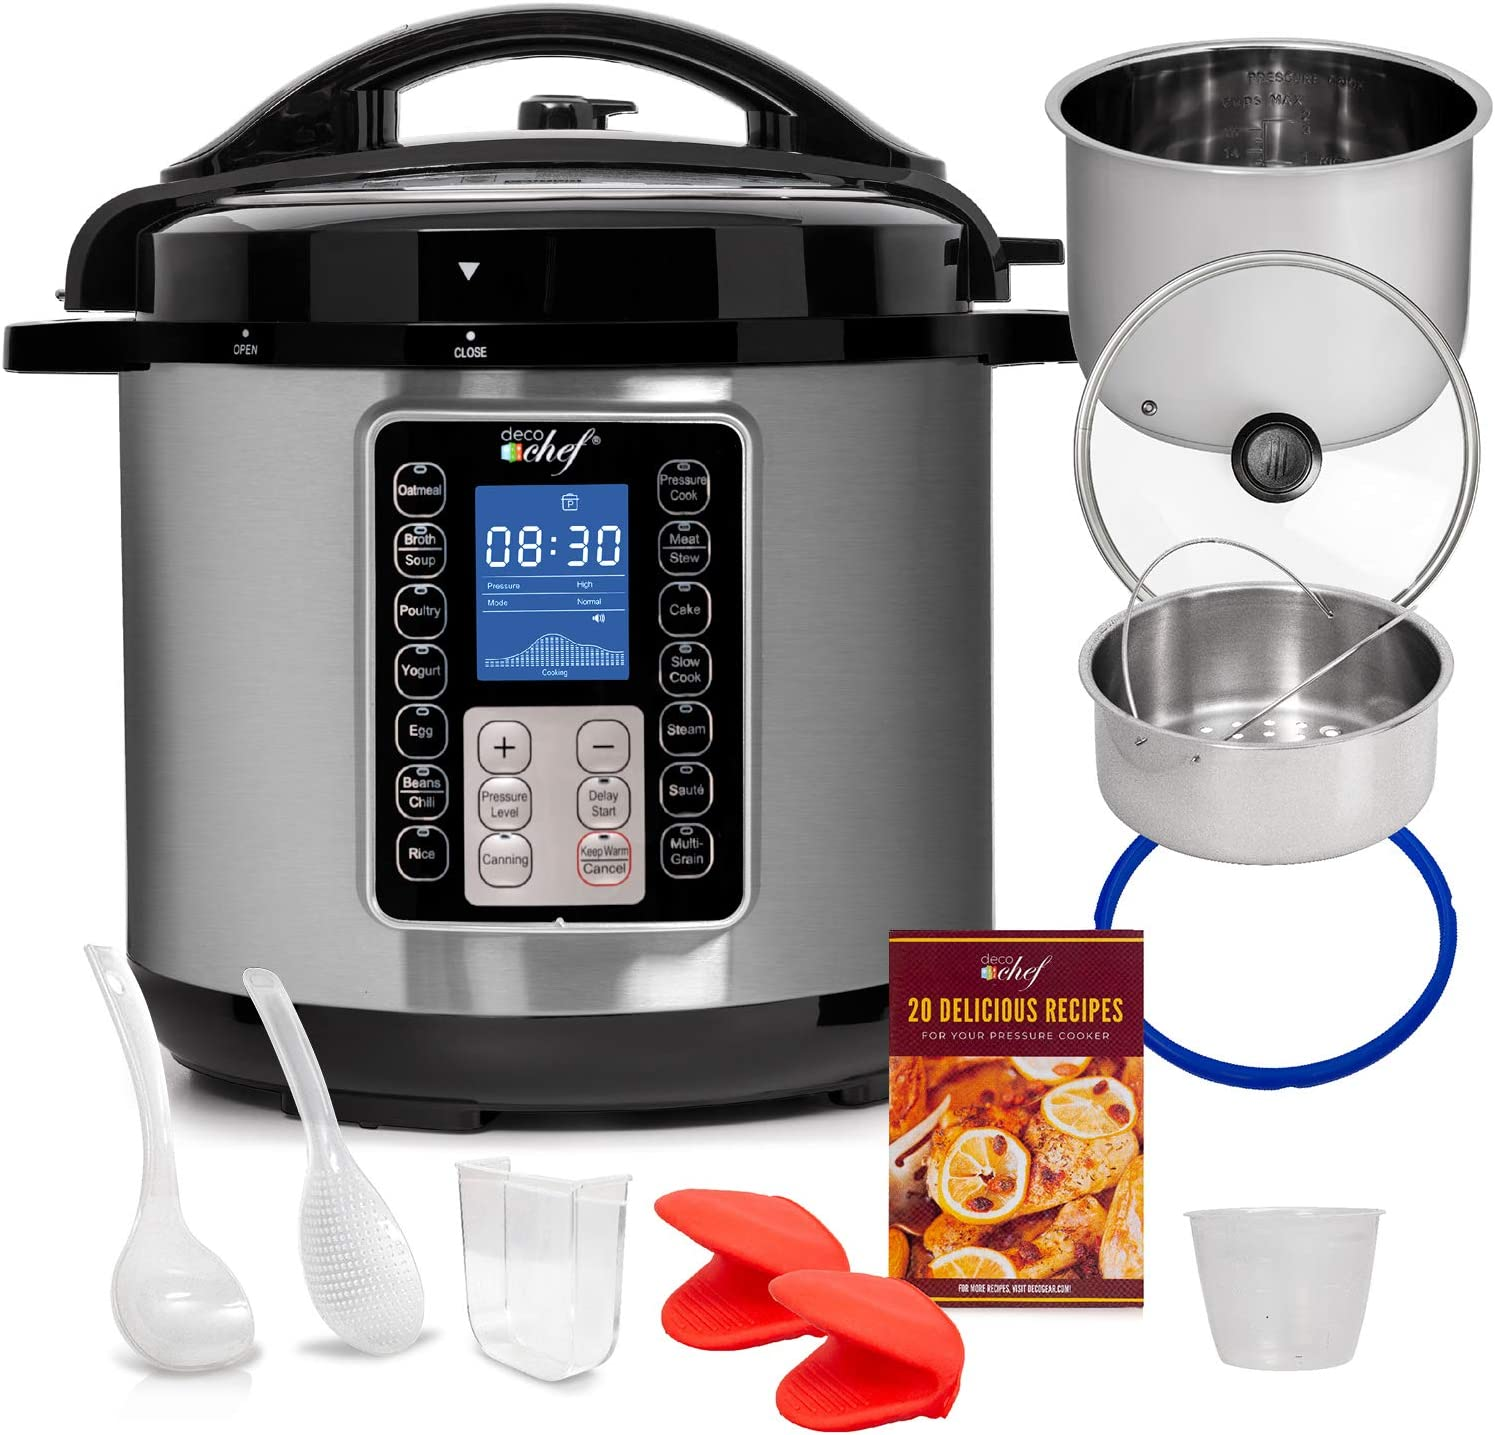 Deco Chef 8 QT 10-in-1 Pressure Cooker – Instant Rice, Saute, Slow Cook, Yogurt, Meats, Desserts, Soups, Stews – Includes Recipe Book, Tempered Glass Lid, Mitts, Grill Rack, and Steaming Basket (Stainless Steel)